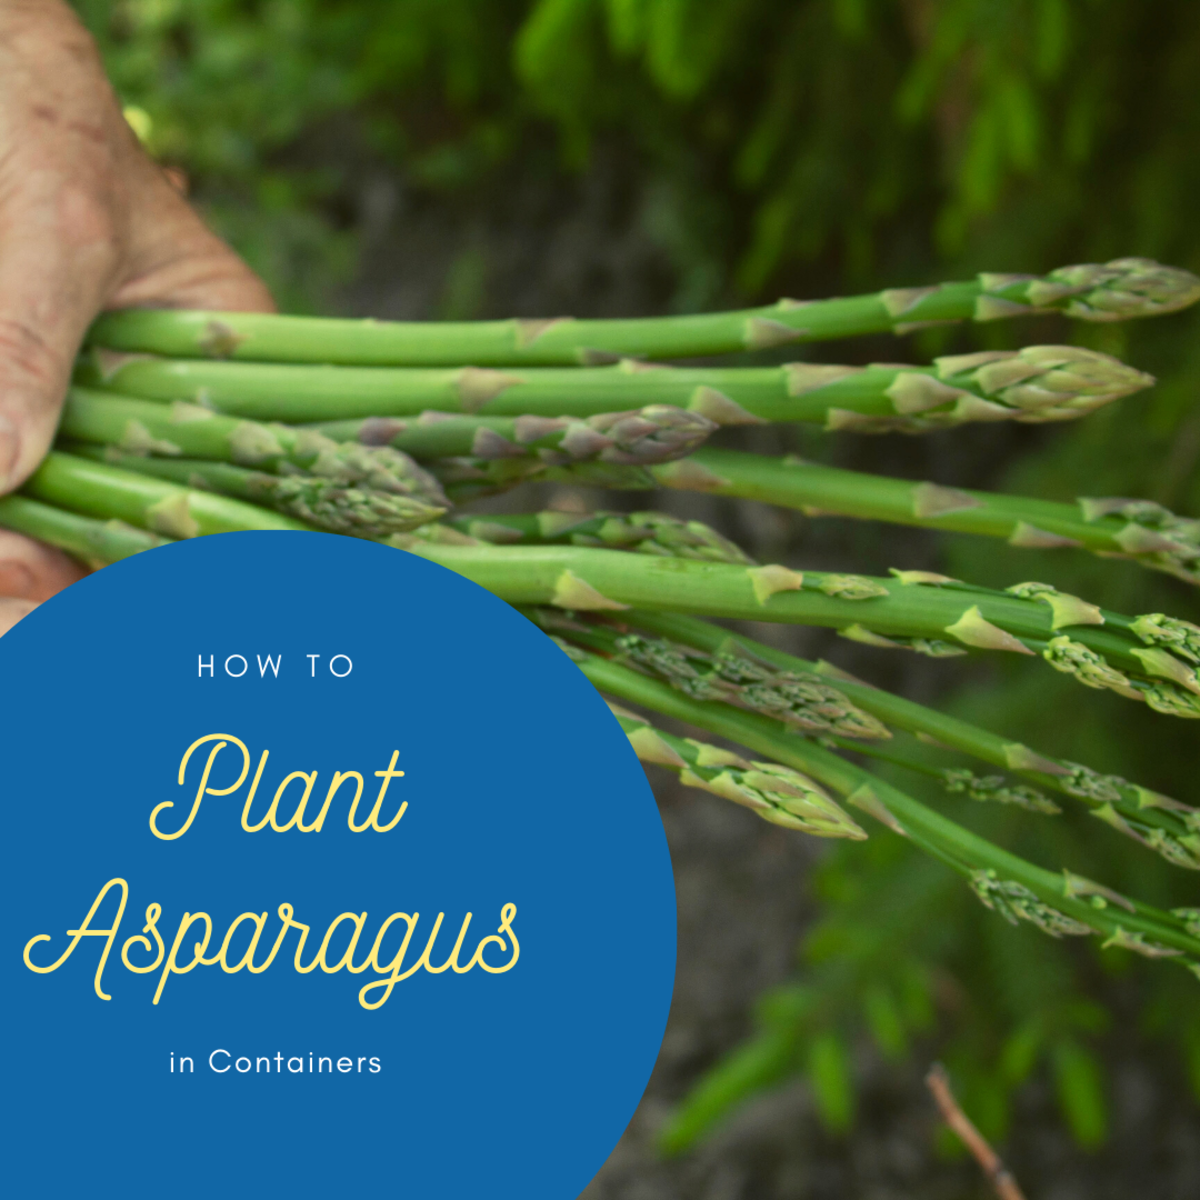 You don't have to wait three years for asparagus to grow if you plant it in containers!